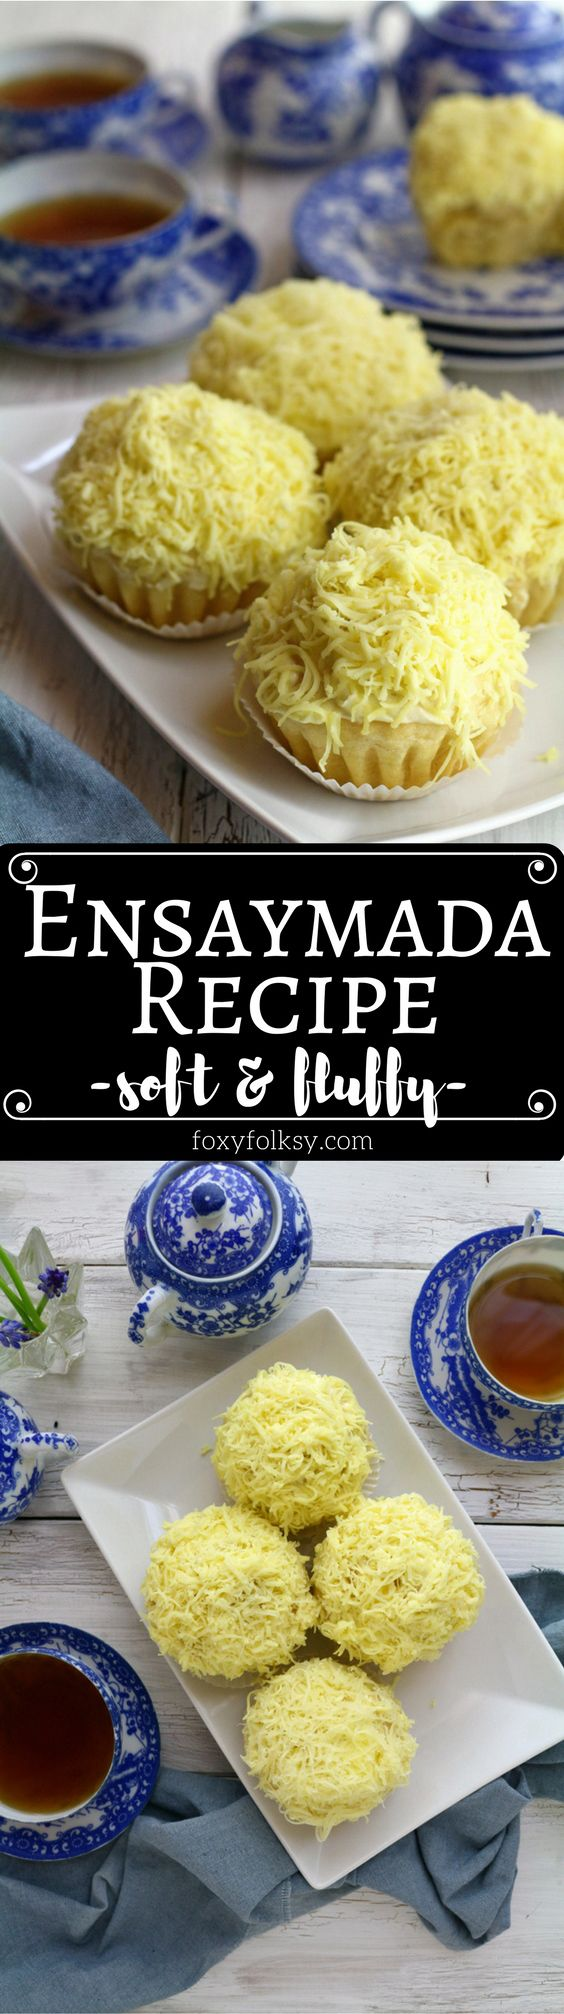 Try this soft and cheesy Ensaymada recipe. | www.foxyfolksy.com #filipinofood #asianfood #ensaymada #bread #pastry #sweet